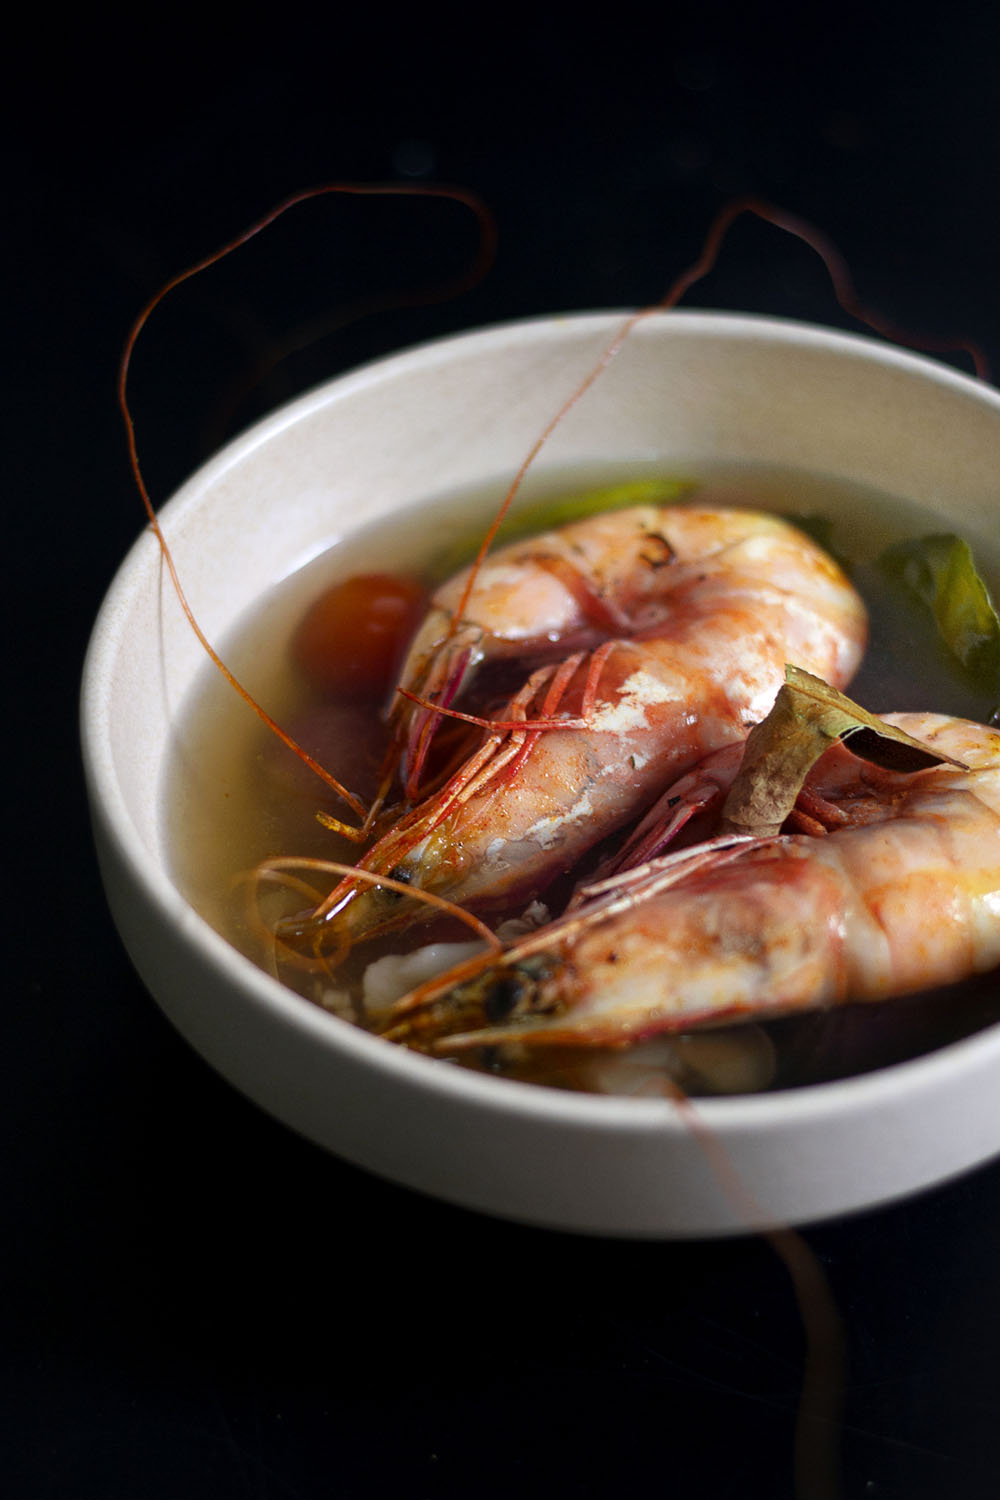 Weekend Kitchen: Tom Yam Soup and Lemongrass Grilled Prawn